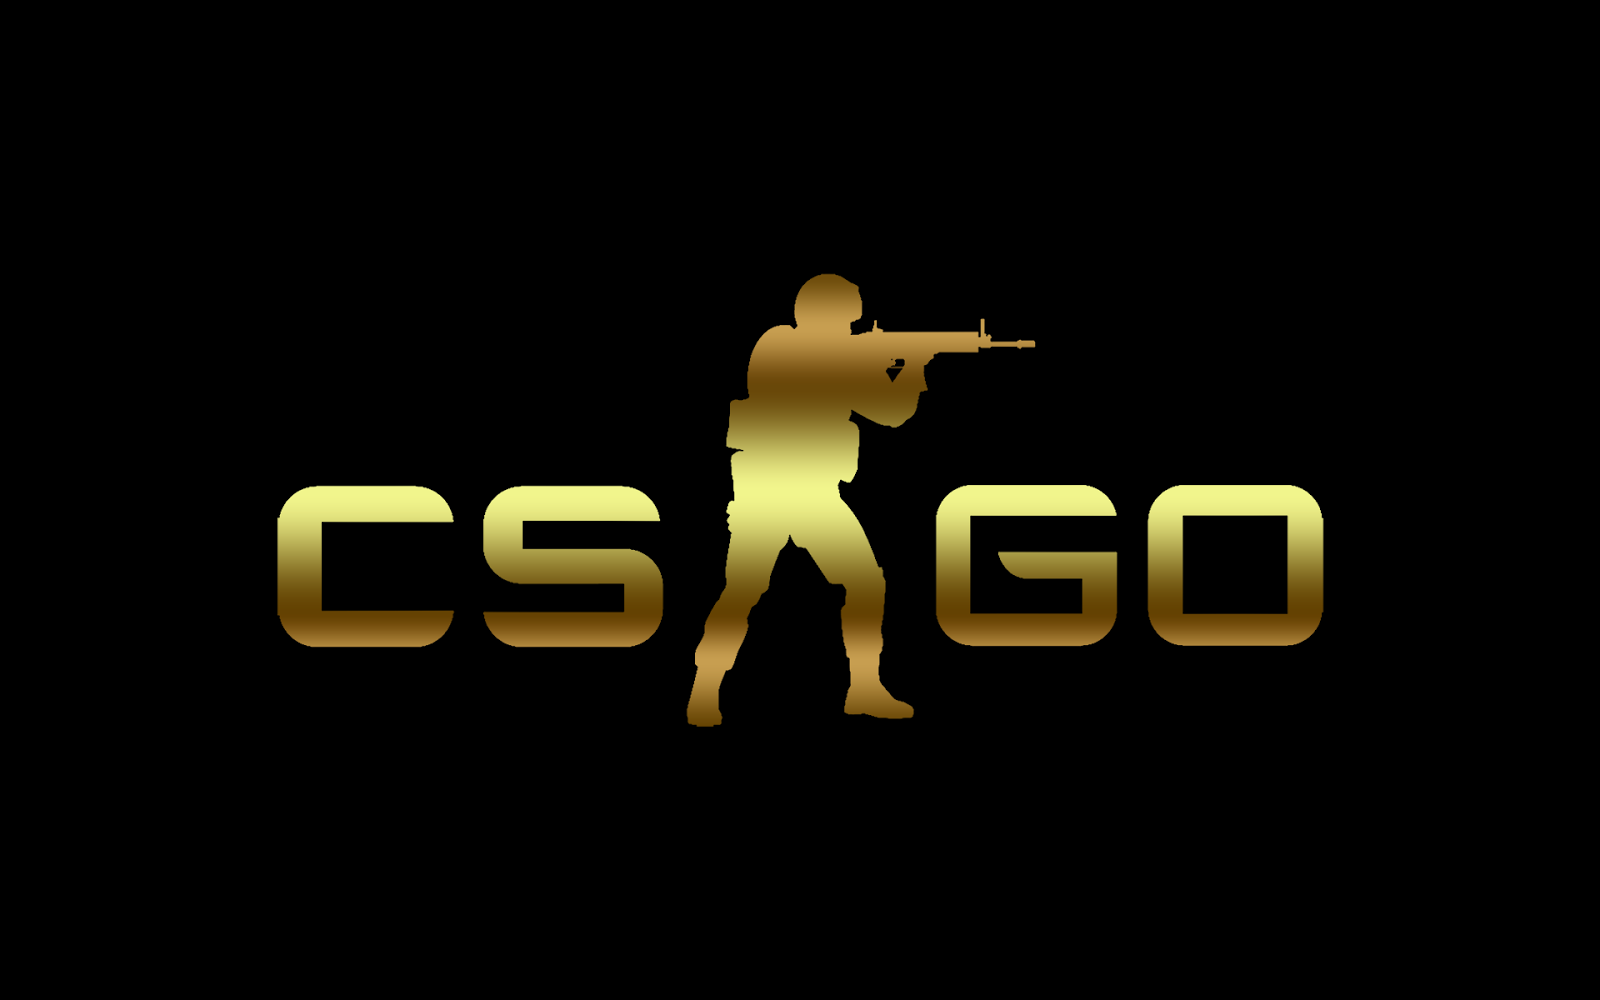 Counter-Strike Global Offensive wallpapers - Achtergronden